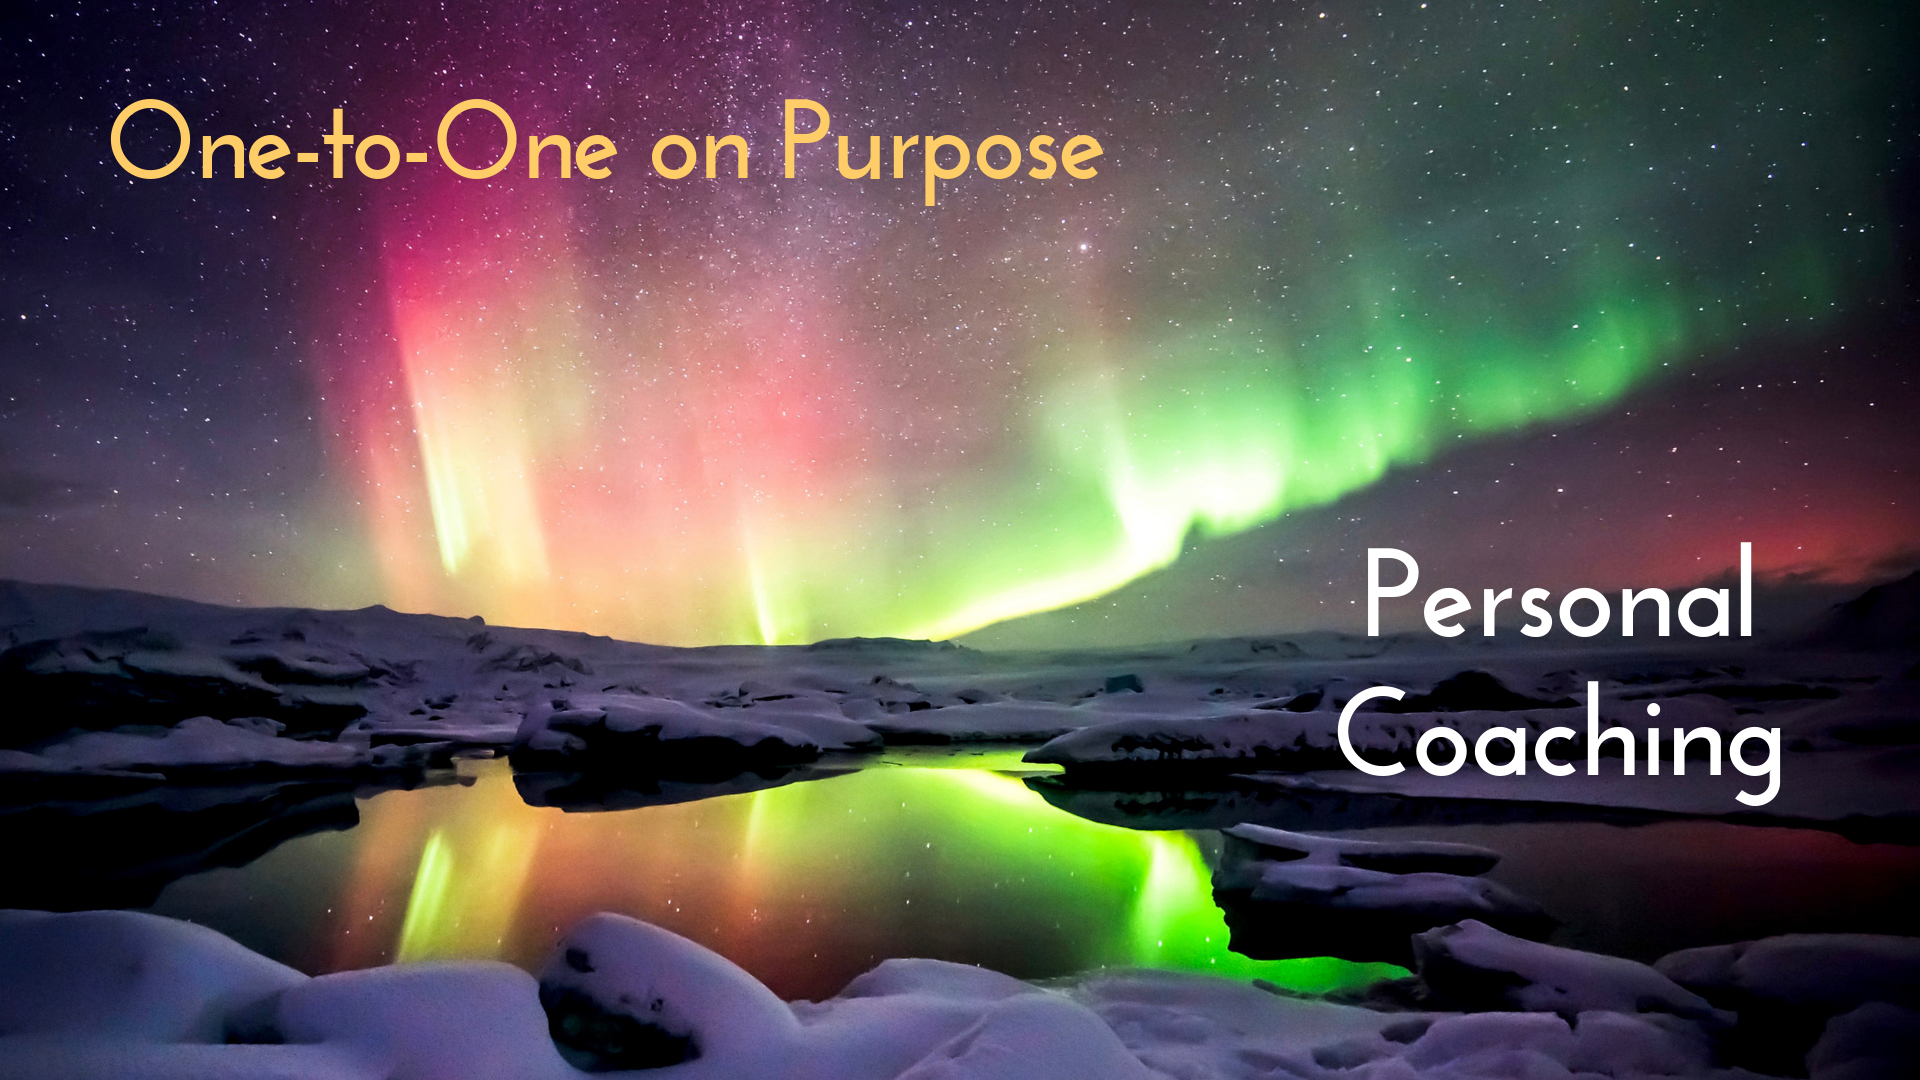 Personal Coaching – One-to-One on Purpose